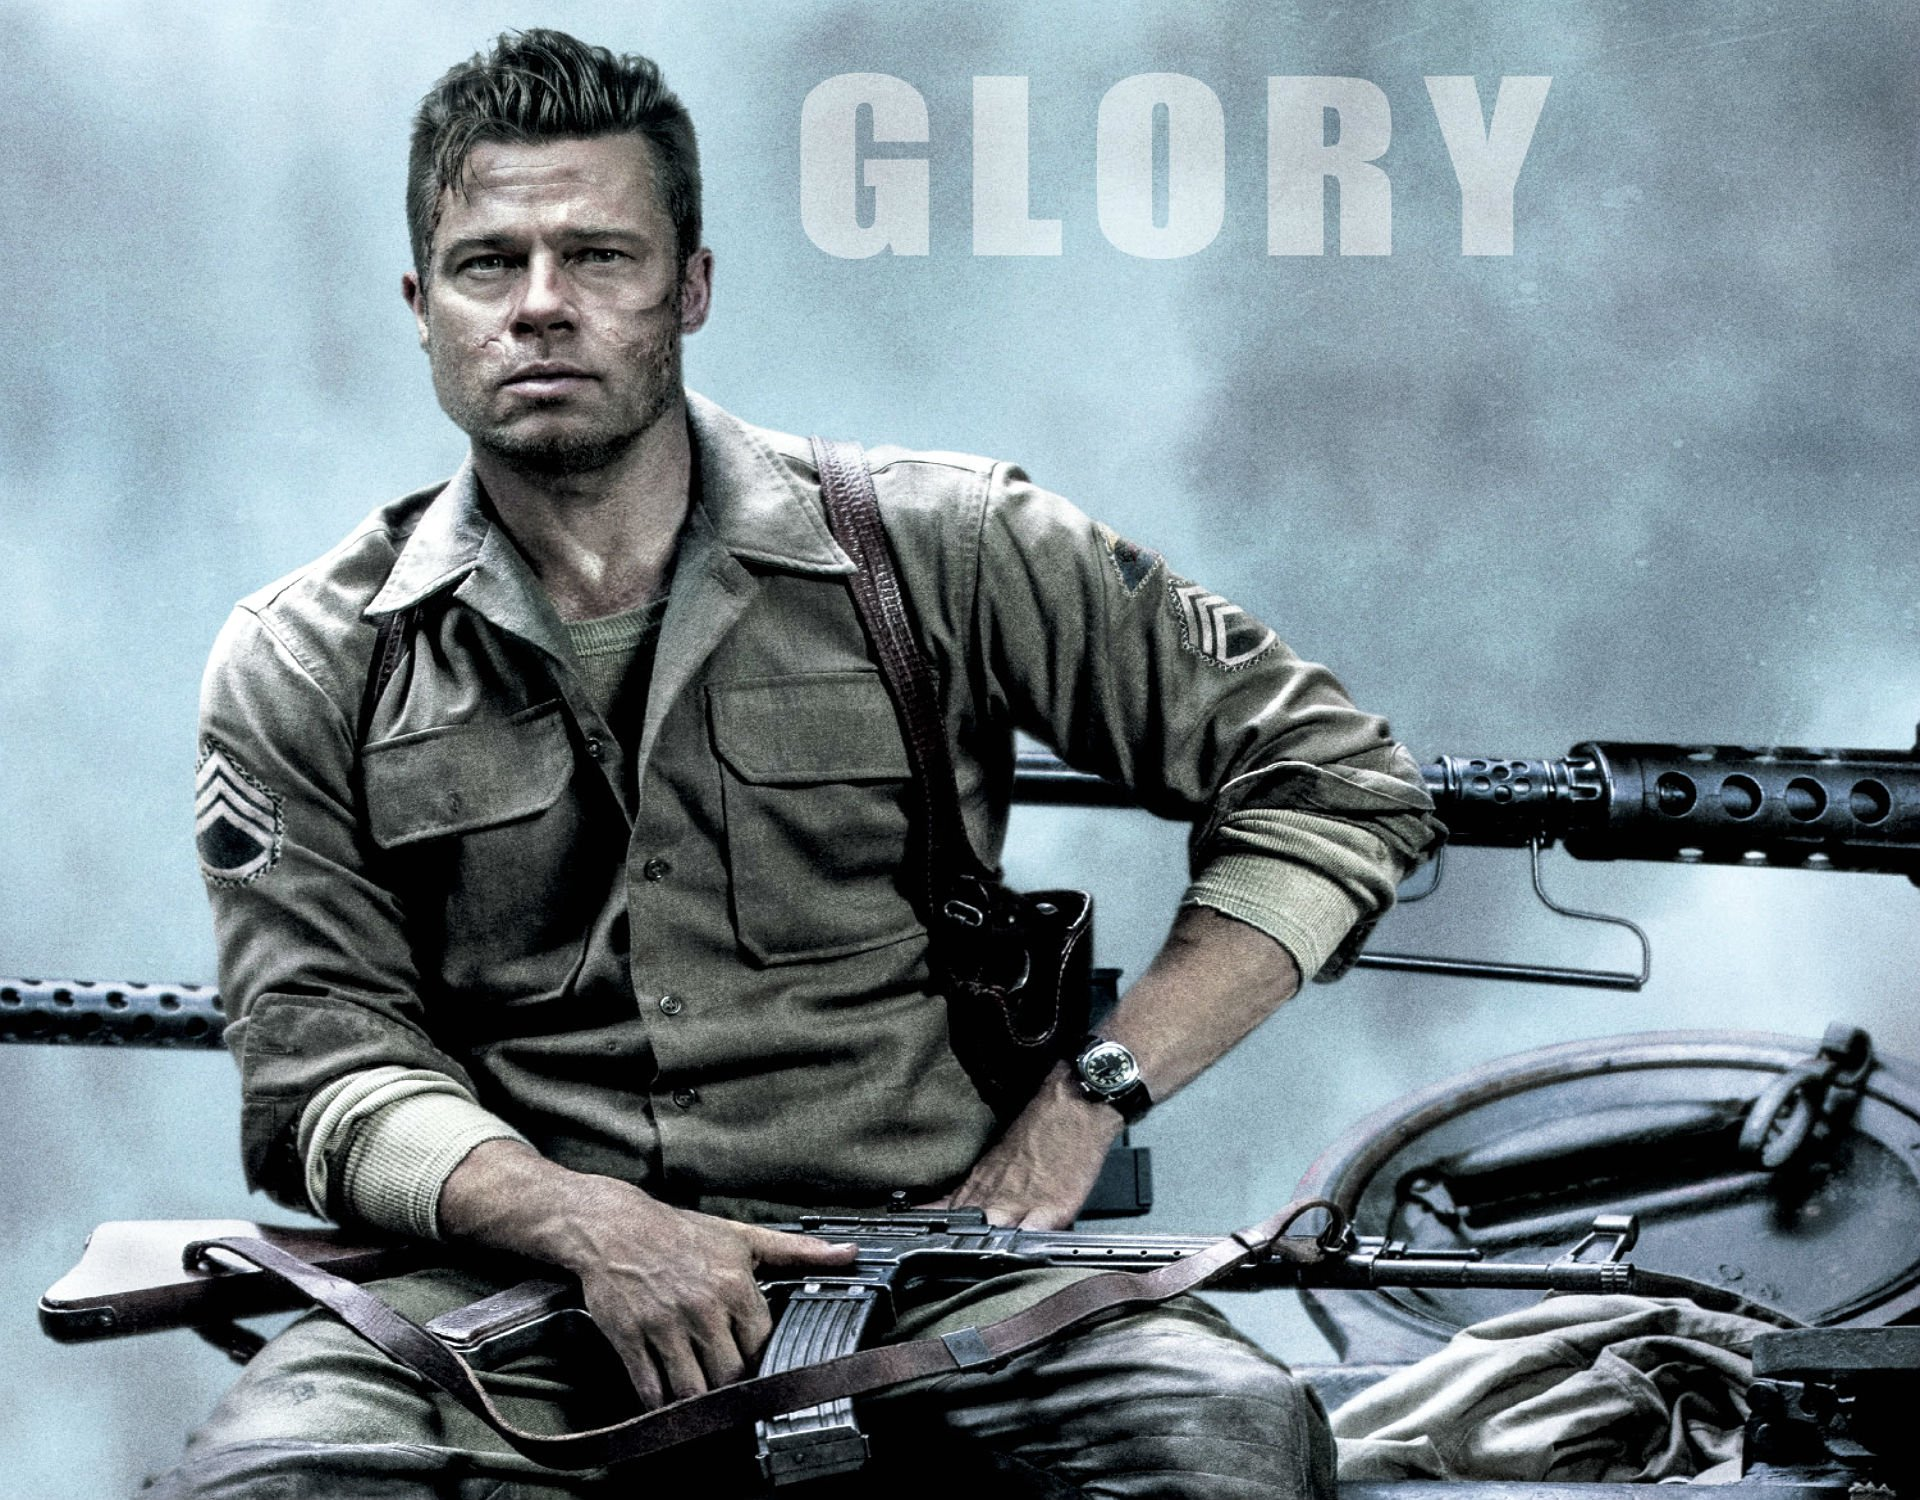 Brad Pitt Hd Wallpapers: Brad Pitt Wallpapers High Resolution And Quality Download